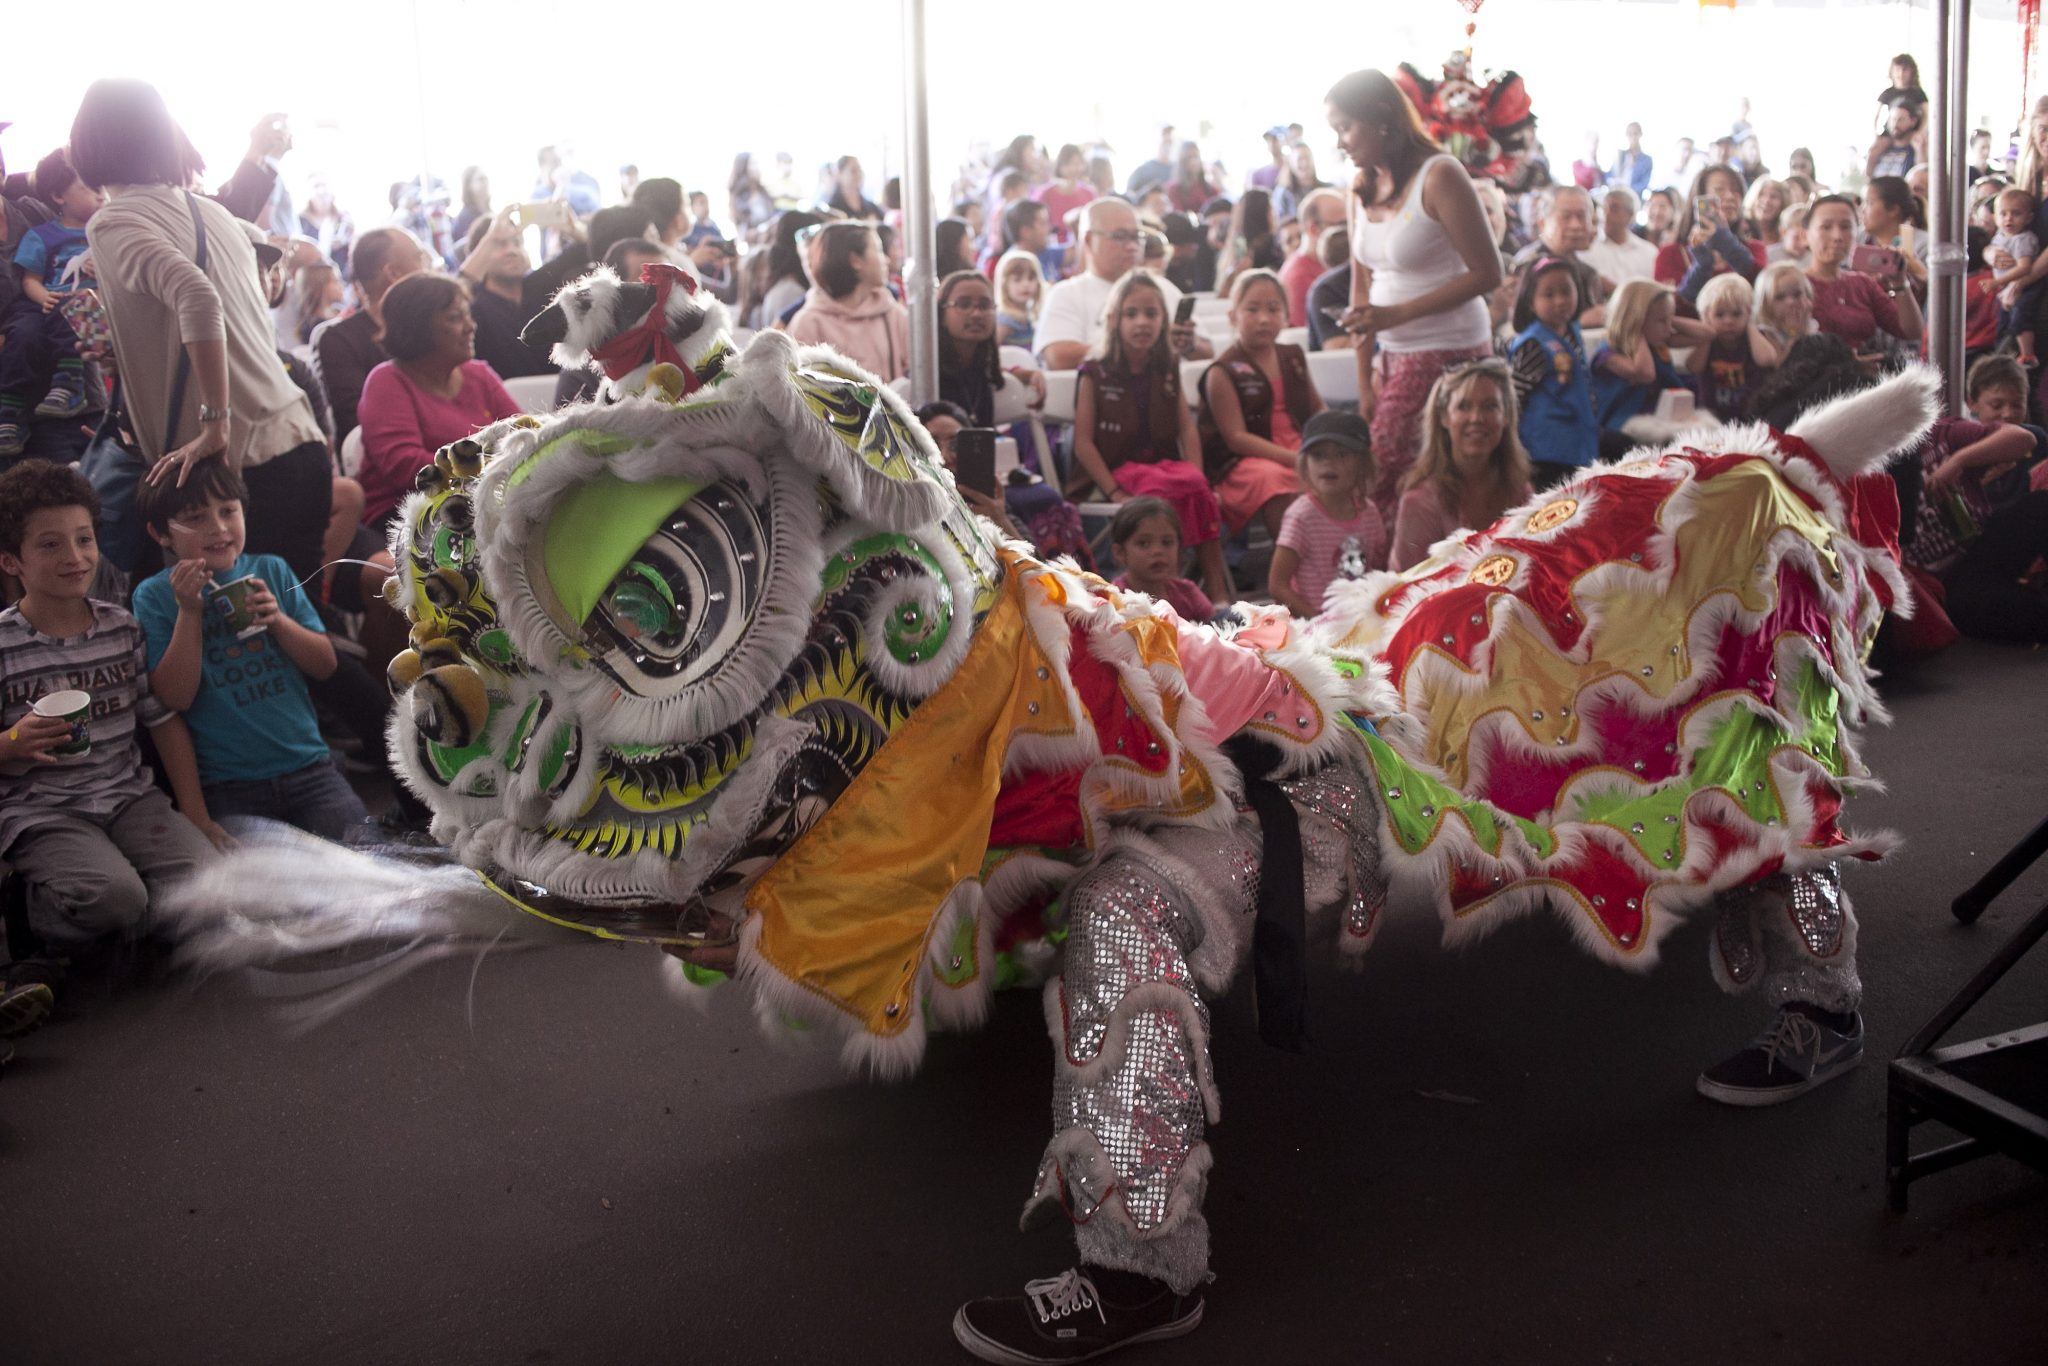 USC Pacific Asia Museum's Lunar New Year Festival